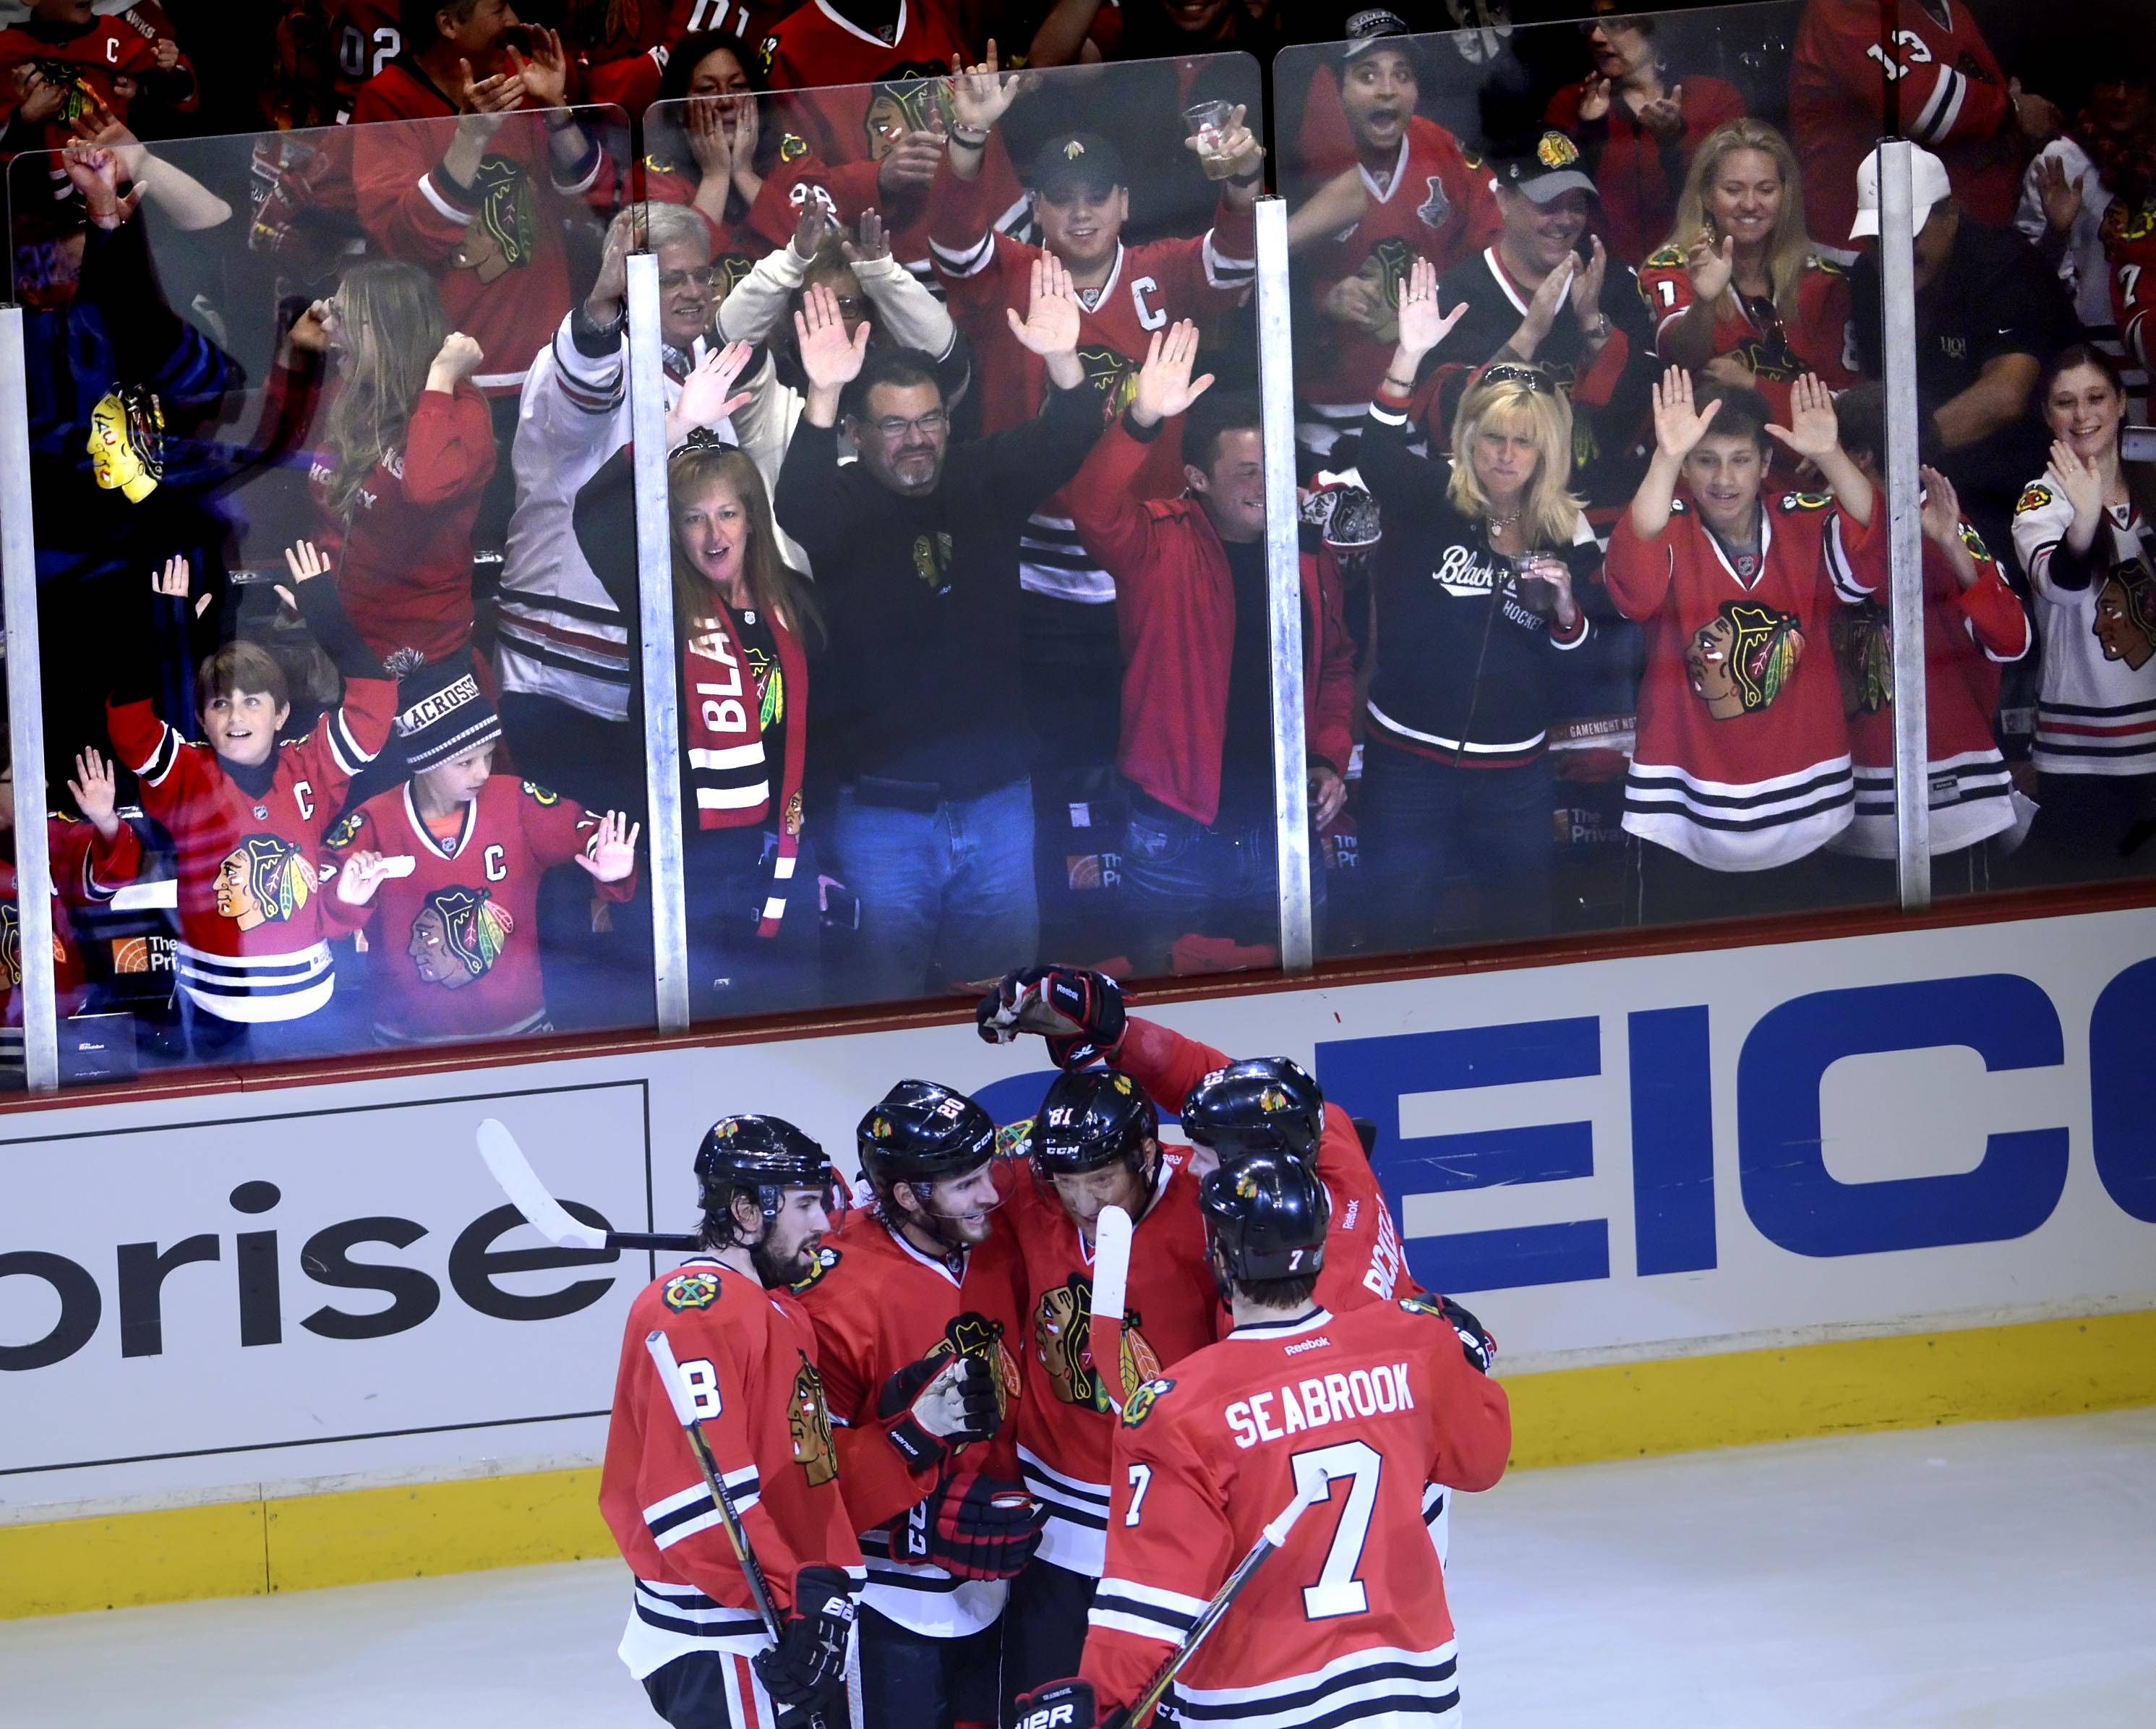 The home crowd celebrates behind Brandon Saad, second from left, and his teammates after Saad's second-period goal against the Minnesota Wild Sunday in Game 2 of the second round of the Stanley Cup Playoffs at the United Center in Chicago.